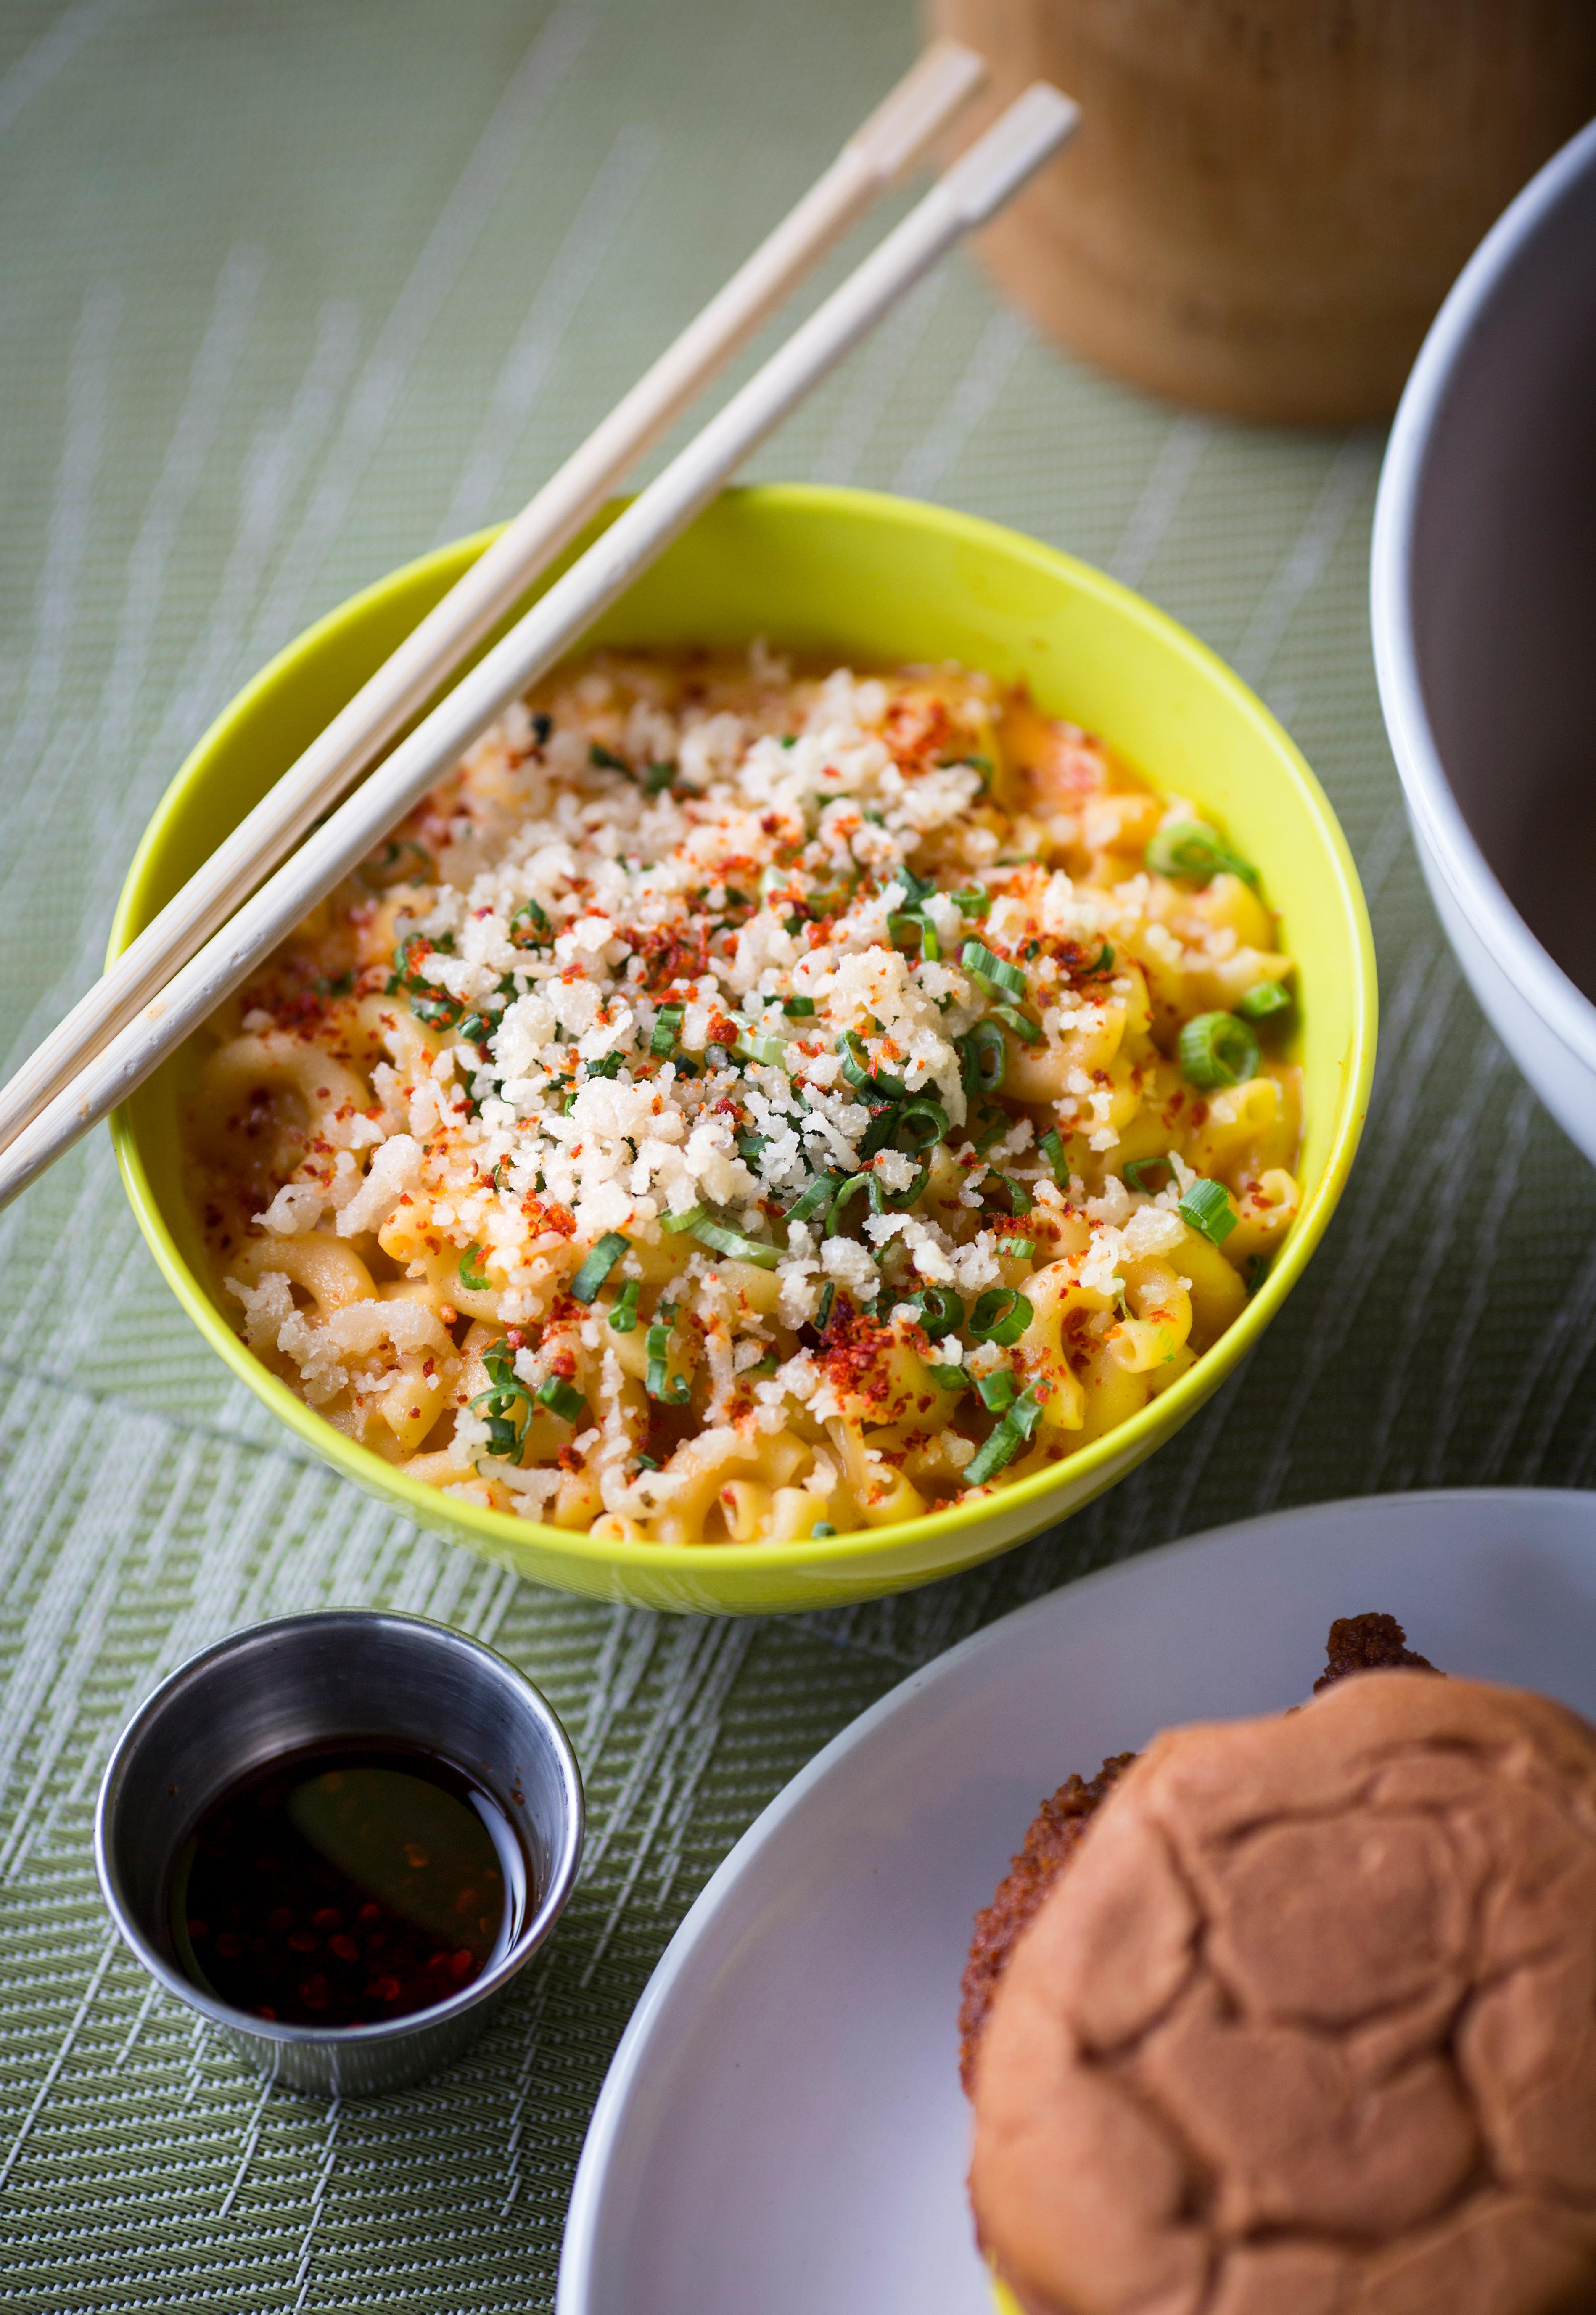 The Mac N' Kimcheese is bowl full of macaroni covered in white cheddar and kim cheese sauce, topped with tempura crispies, green onion as garnish, and chili garlic salt for a kick, at Ma'Ono in West Seattle. The restaurant popped up almost four years ago and is a Hawaiian inspired, asian fusion joint that specializes in Chicken and Whiskey. If the rain has got you down, head on over to Ma'Ono for some soul food. (Sy Bean / Seattle Refined)